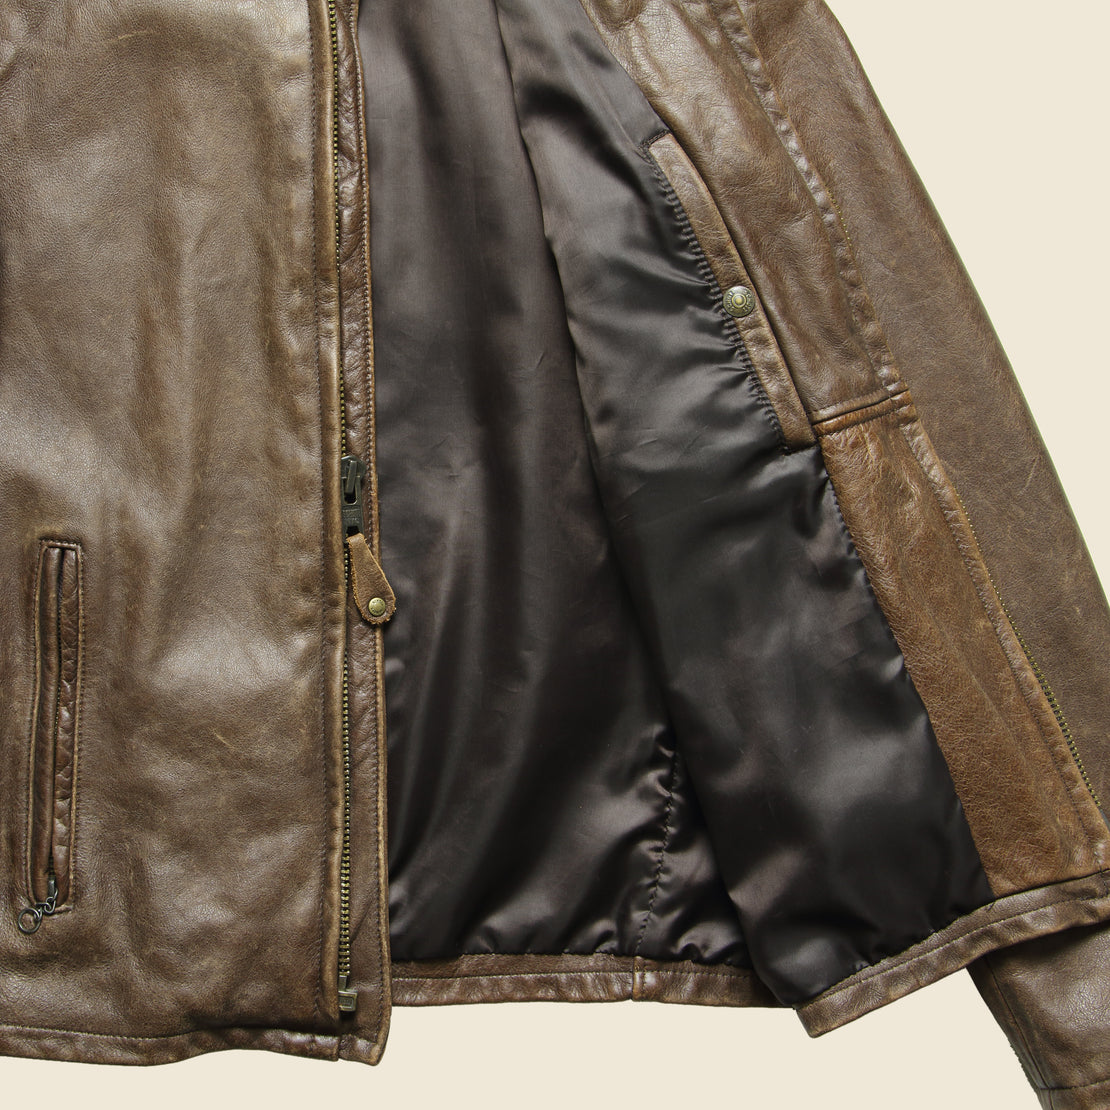 Cowhide Leather Café Racer Jacket - Brown